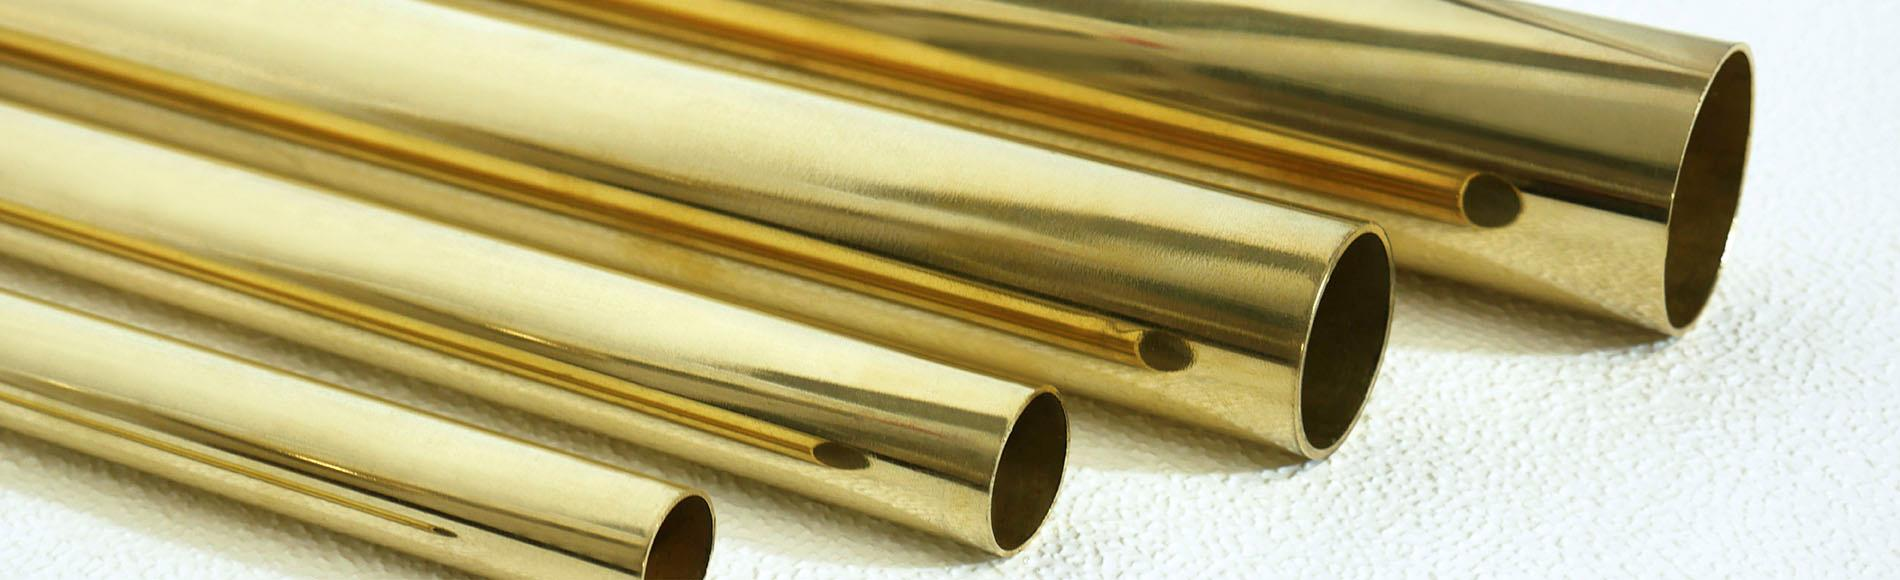 http://www.fitco.gr/userfiles/45aad4a2-7fba-4093-8a2a-a6de00bc5a0a/brass-welded-tube.jpg?quality=75&w=1900